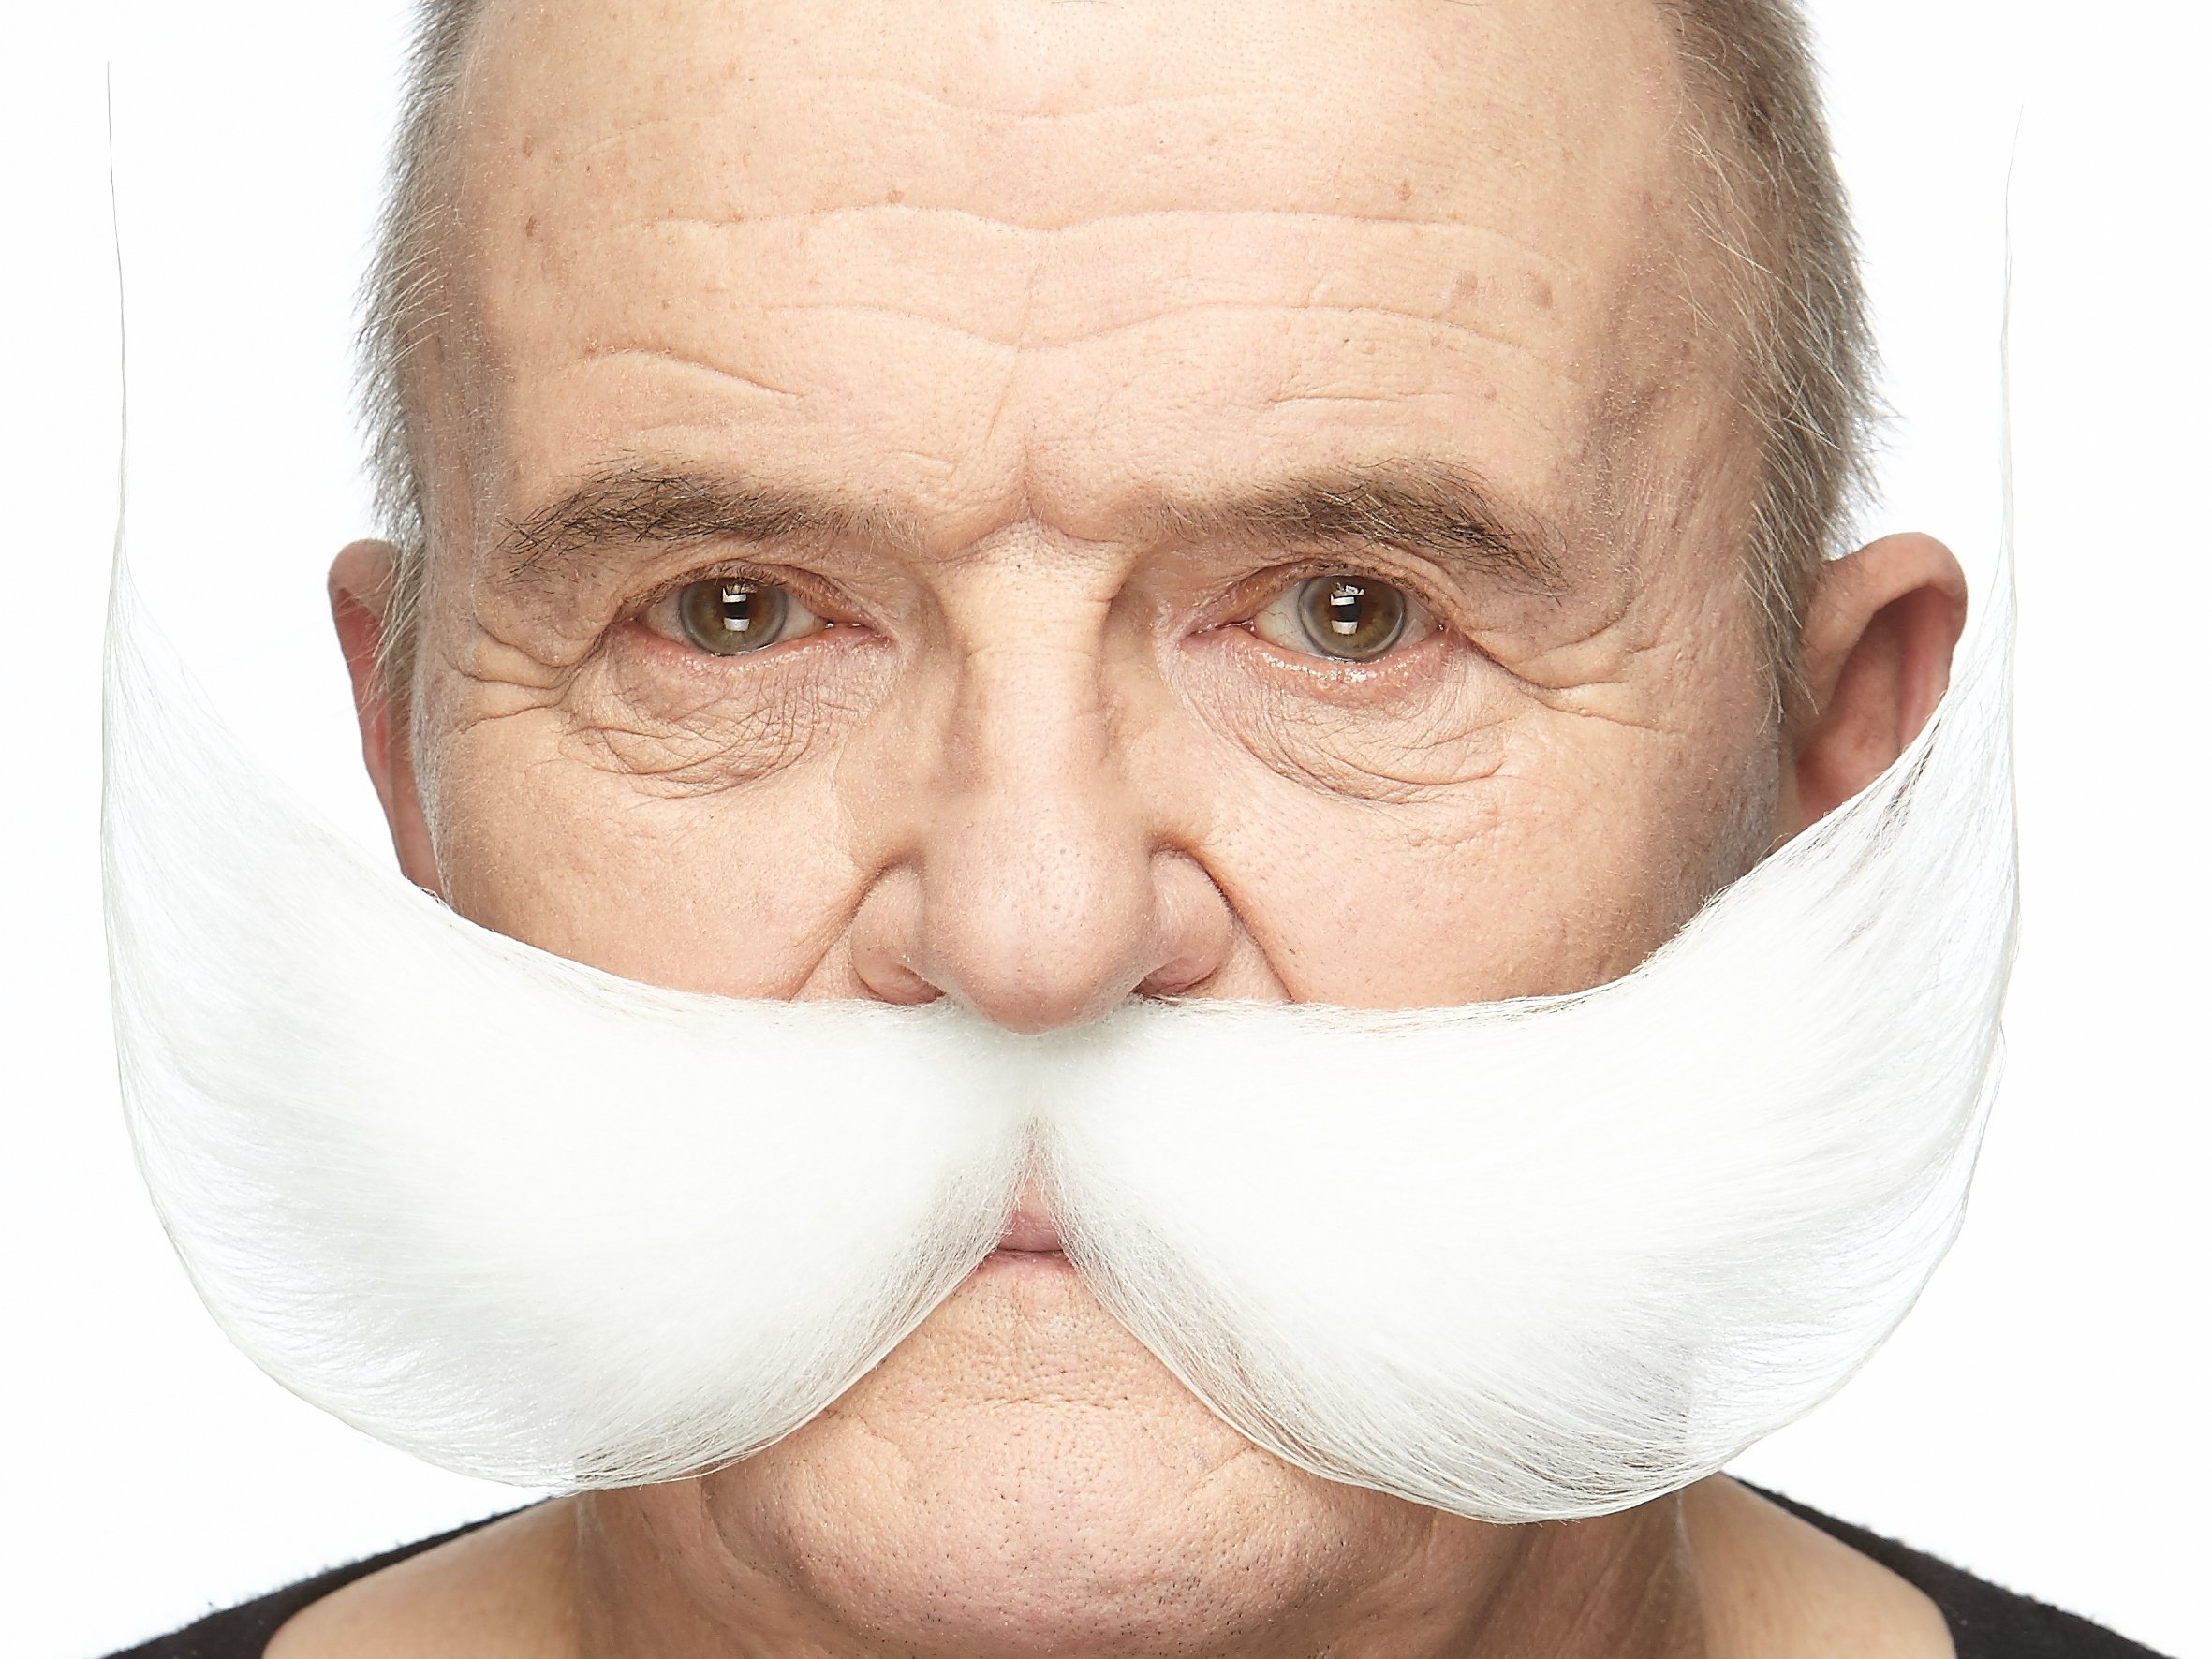 Mustaches Self Adhesive, Novelty, Fake Fisherman's, White Color